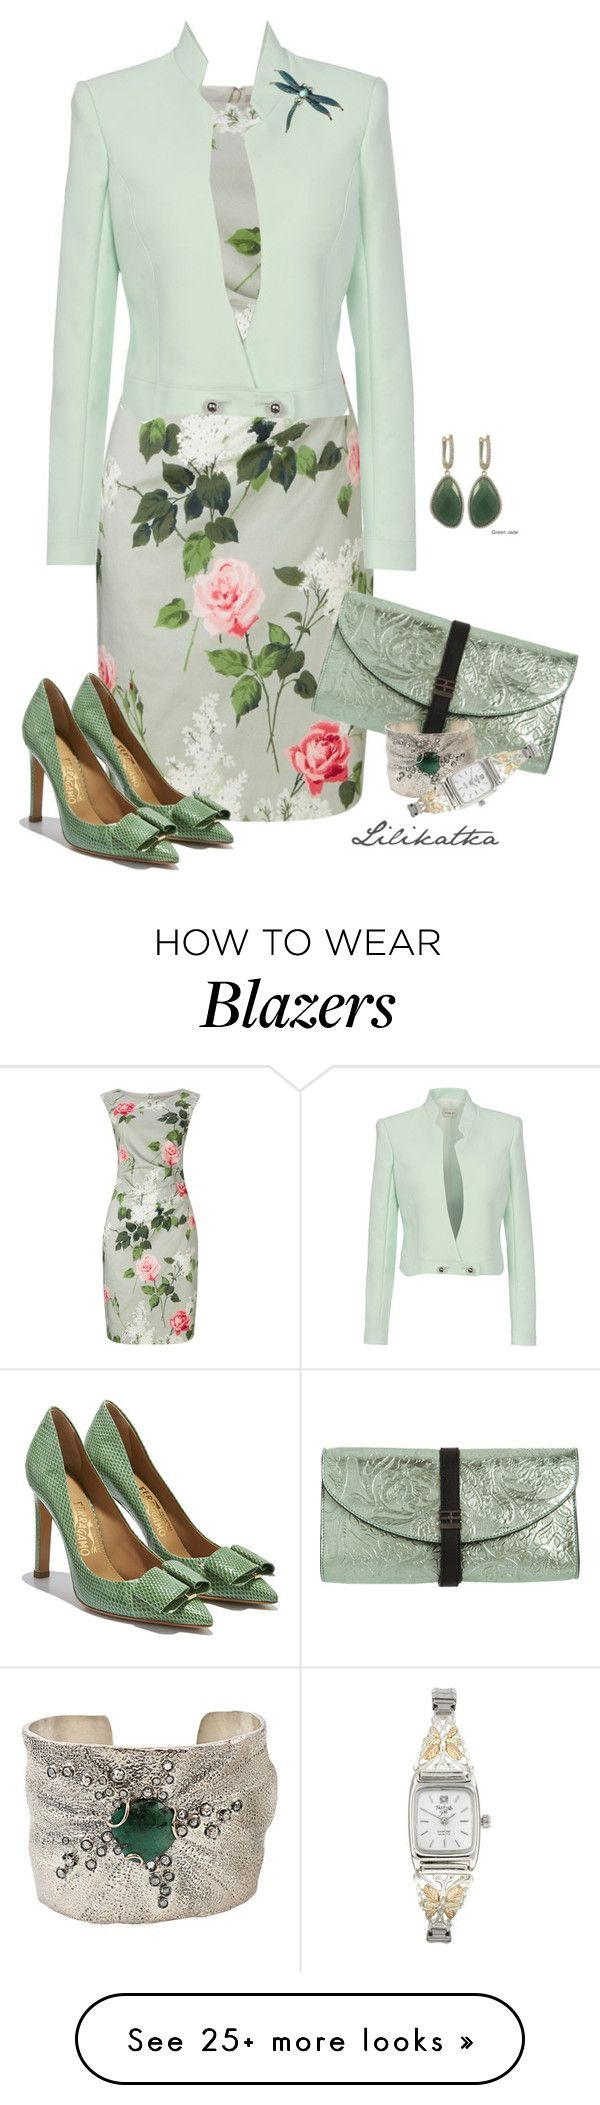 """""""Pivonka#1261"""" by lilikatka on Polyvore featuring Phase Eight, Thierry Mugler, Salvatore Ferragamo, Reece Hudson and Federica Rettore"""